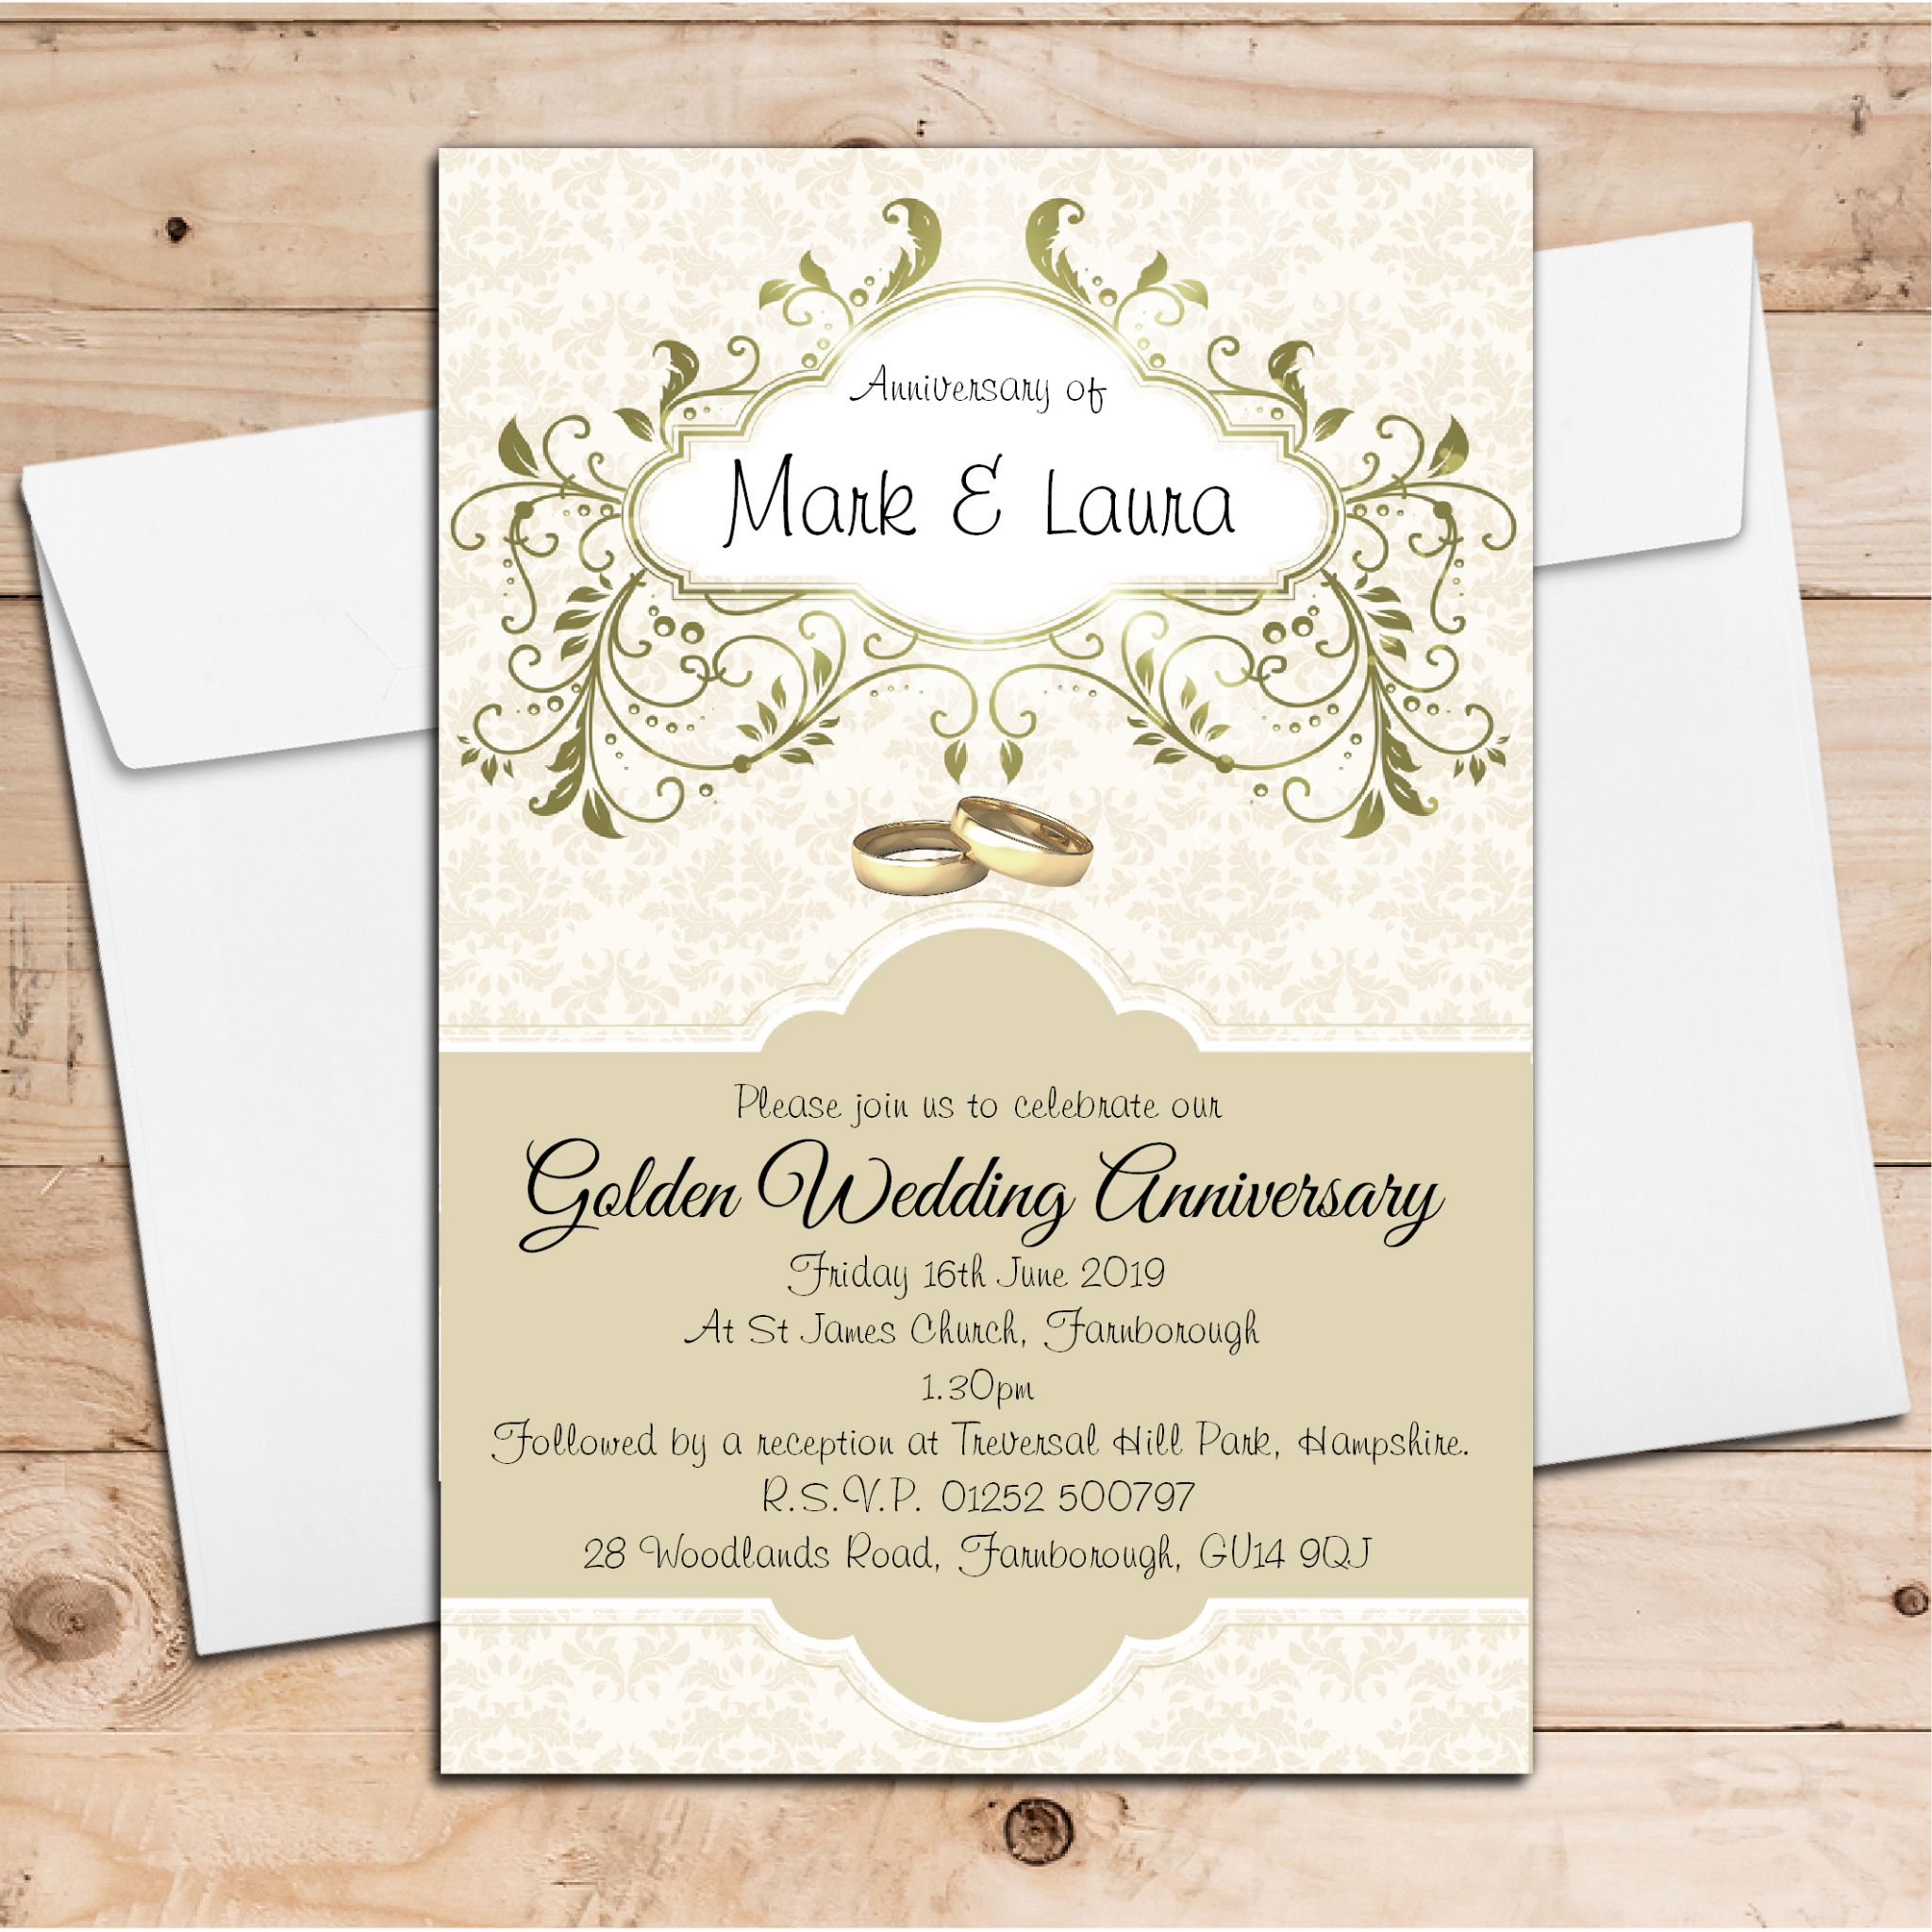 10 Year Wedding Anniversary Invitations: 10 Personalised Golden Wedding Anniversary Invitations N13